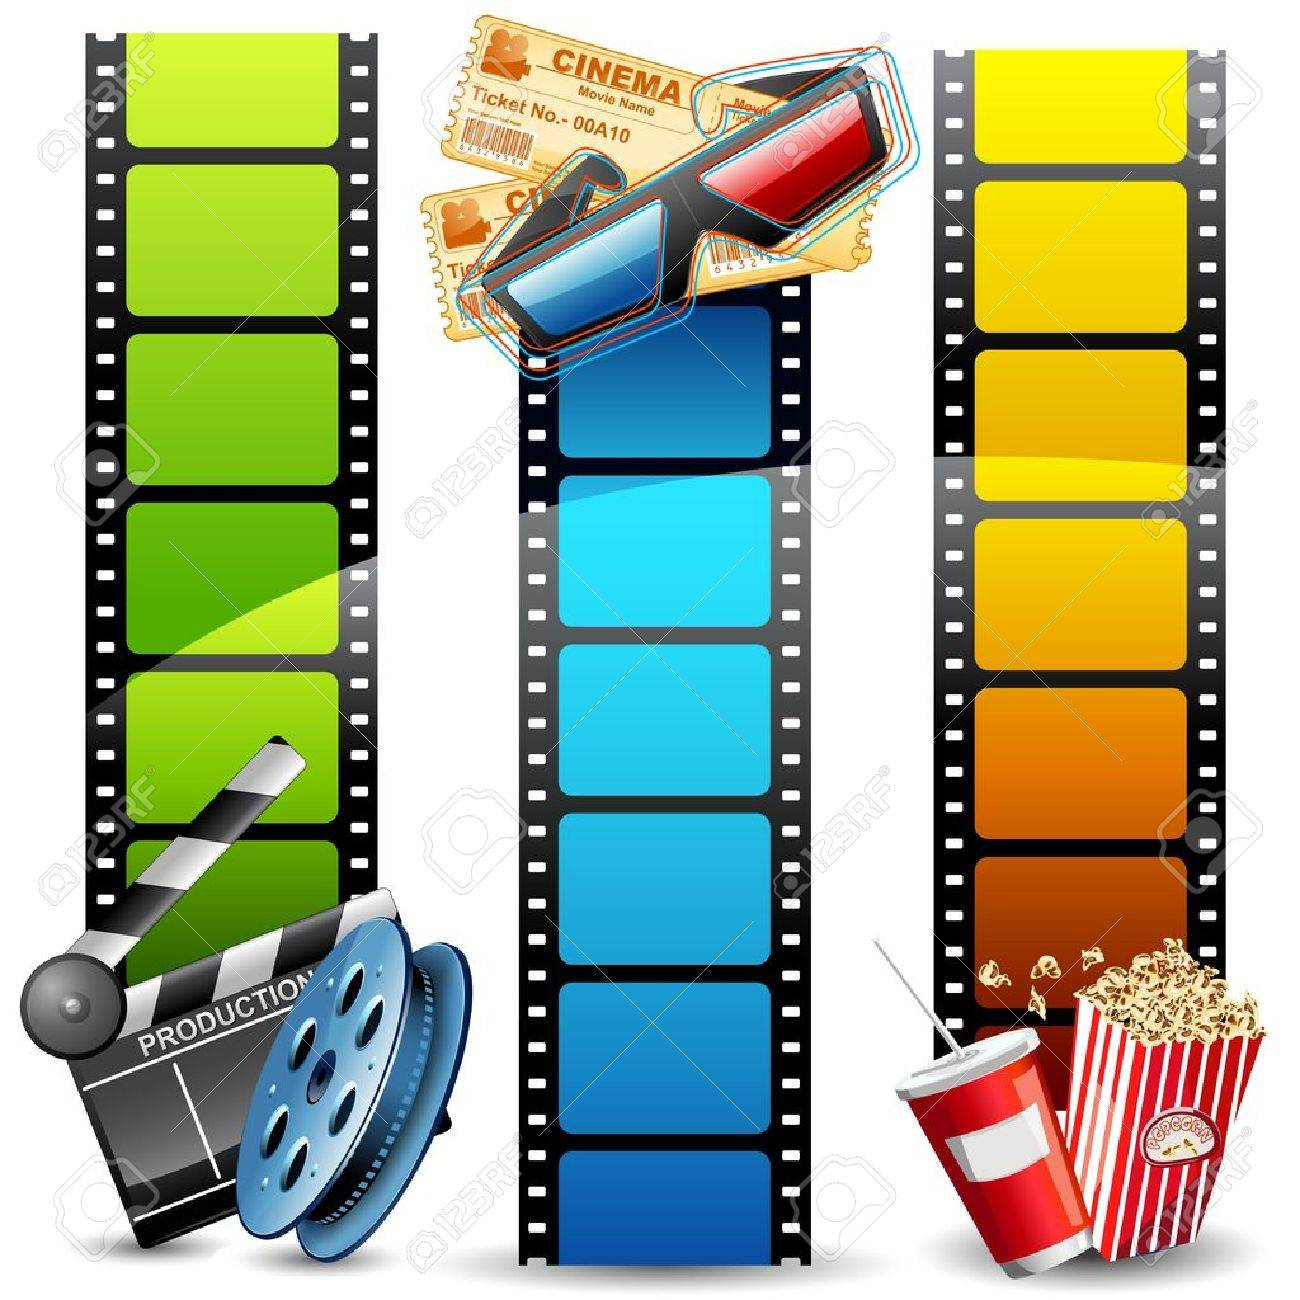 illustration of colorful film reel with pop corn,reel and clapper board - 11275739